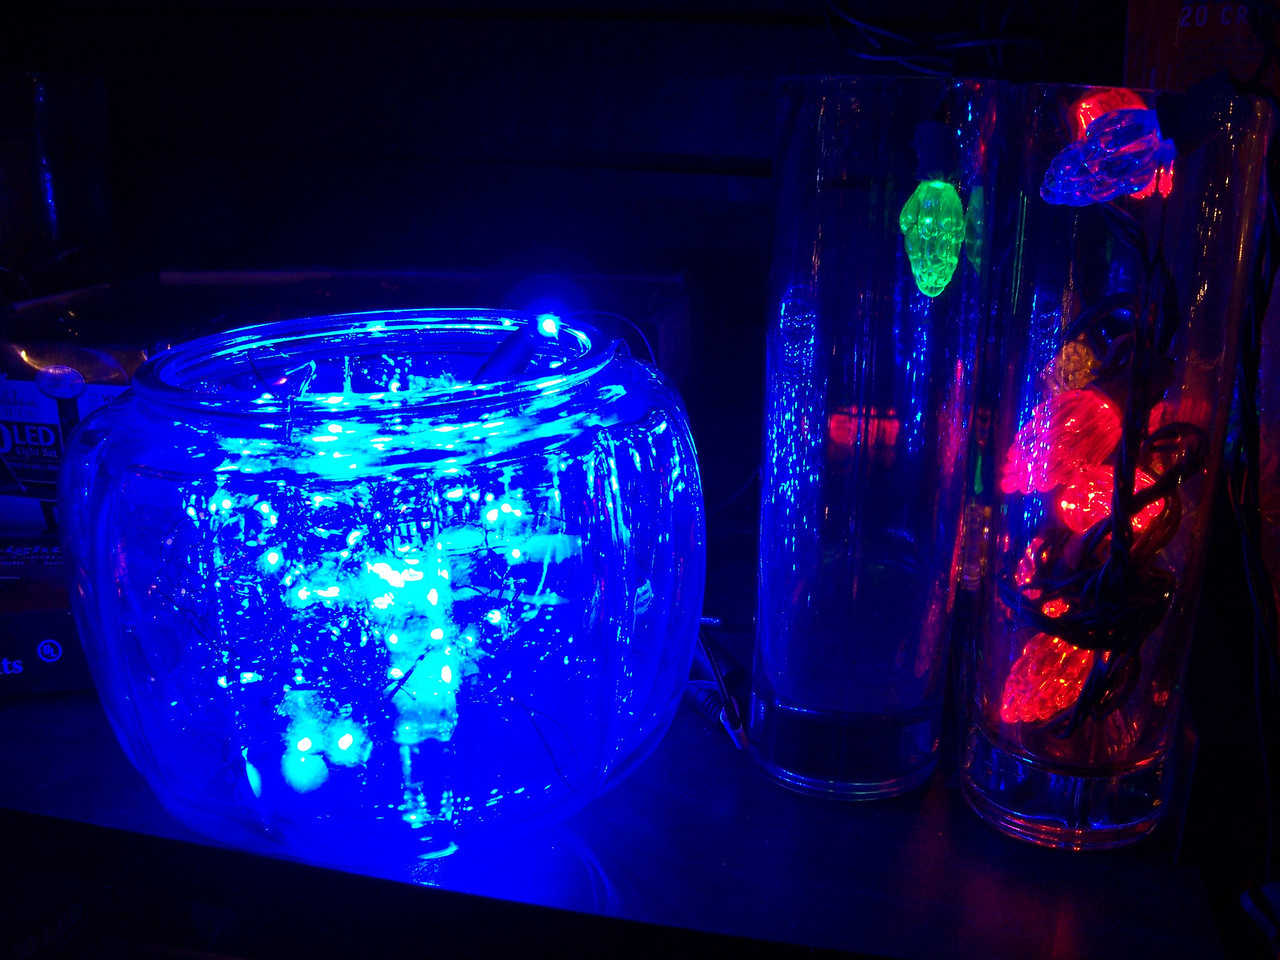 """Christmas lights displayed in vases and other glass containers at the Kris Kringl shop. [Leavenworth, WA - December 2013 - <b><a target=""""_new"""" href=""""http://youtu.be/NqCqDCOY_tc"""">Watch my video here</a></b>]"""